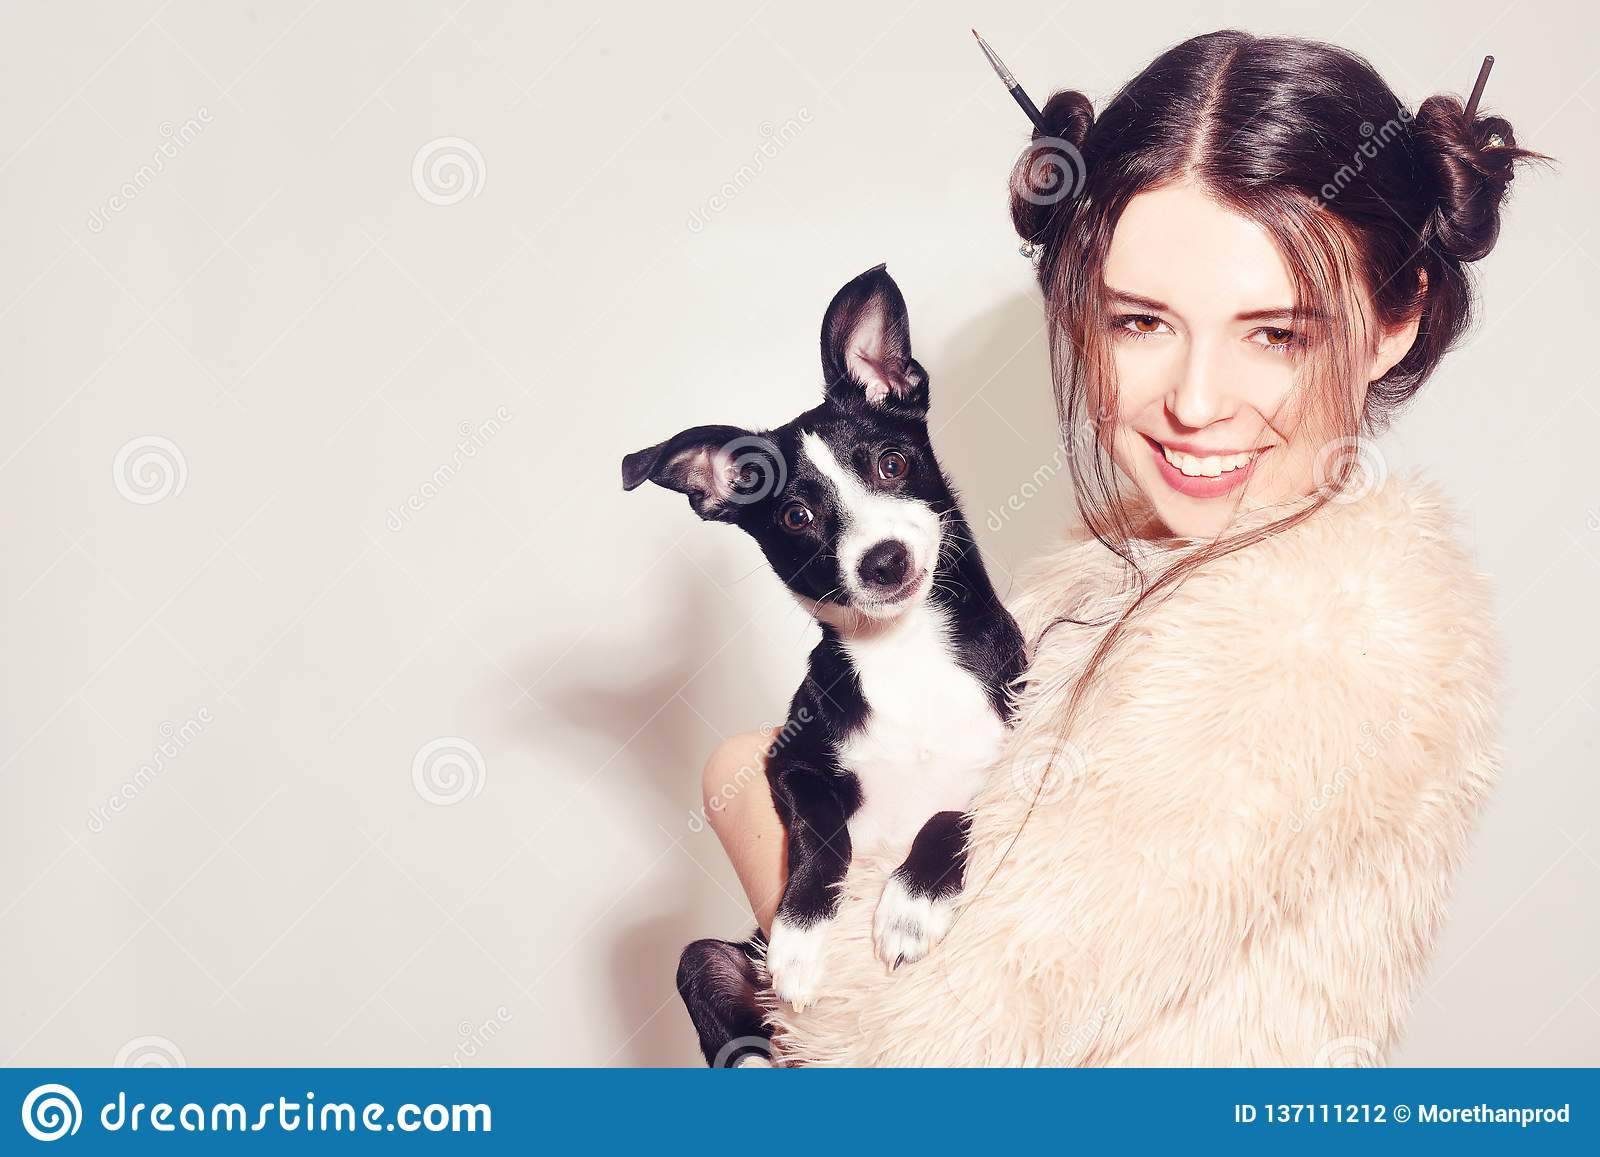 Happy girl with a puppy. Woman have fun with her dog. Dog owner having fun with pet. Friendship between human and dog. Pets